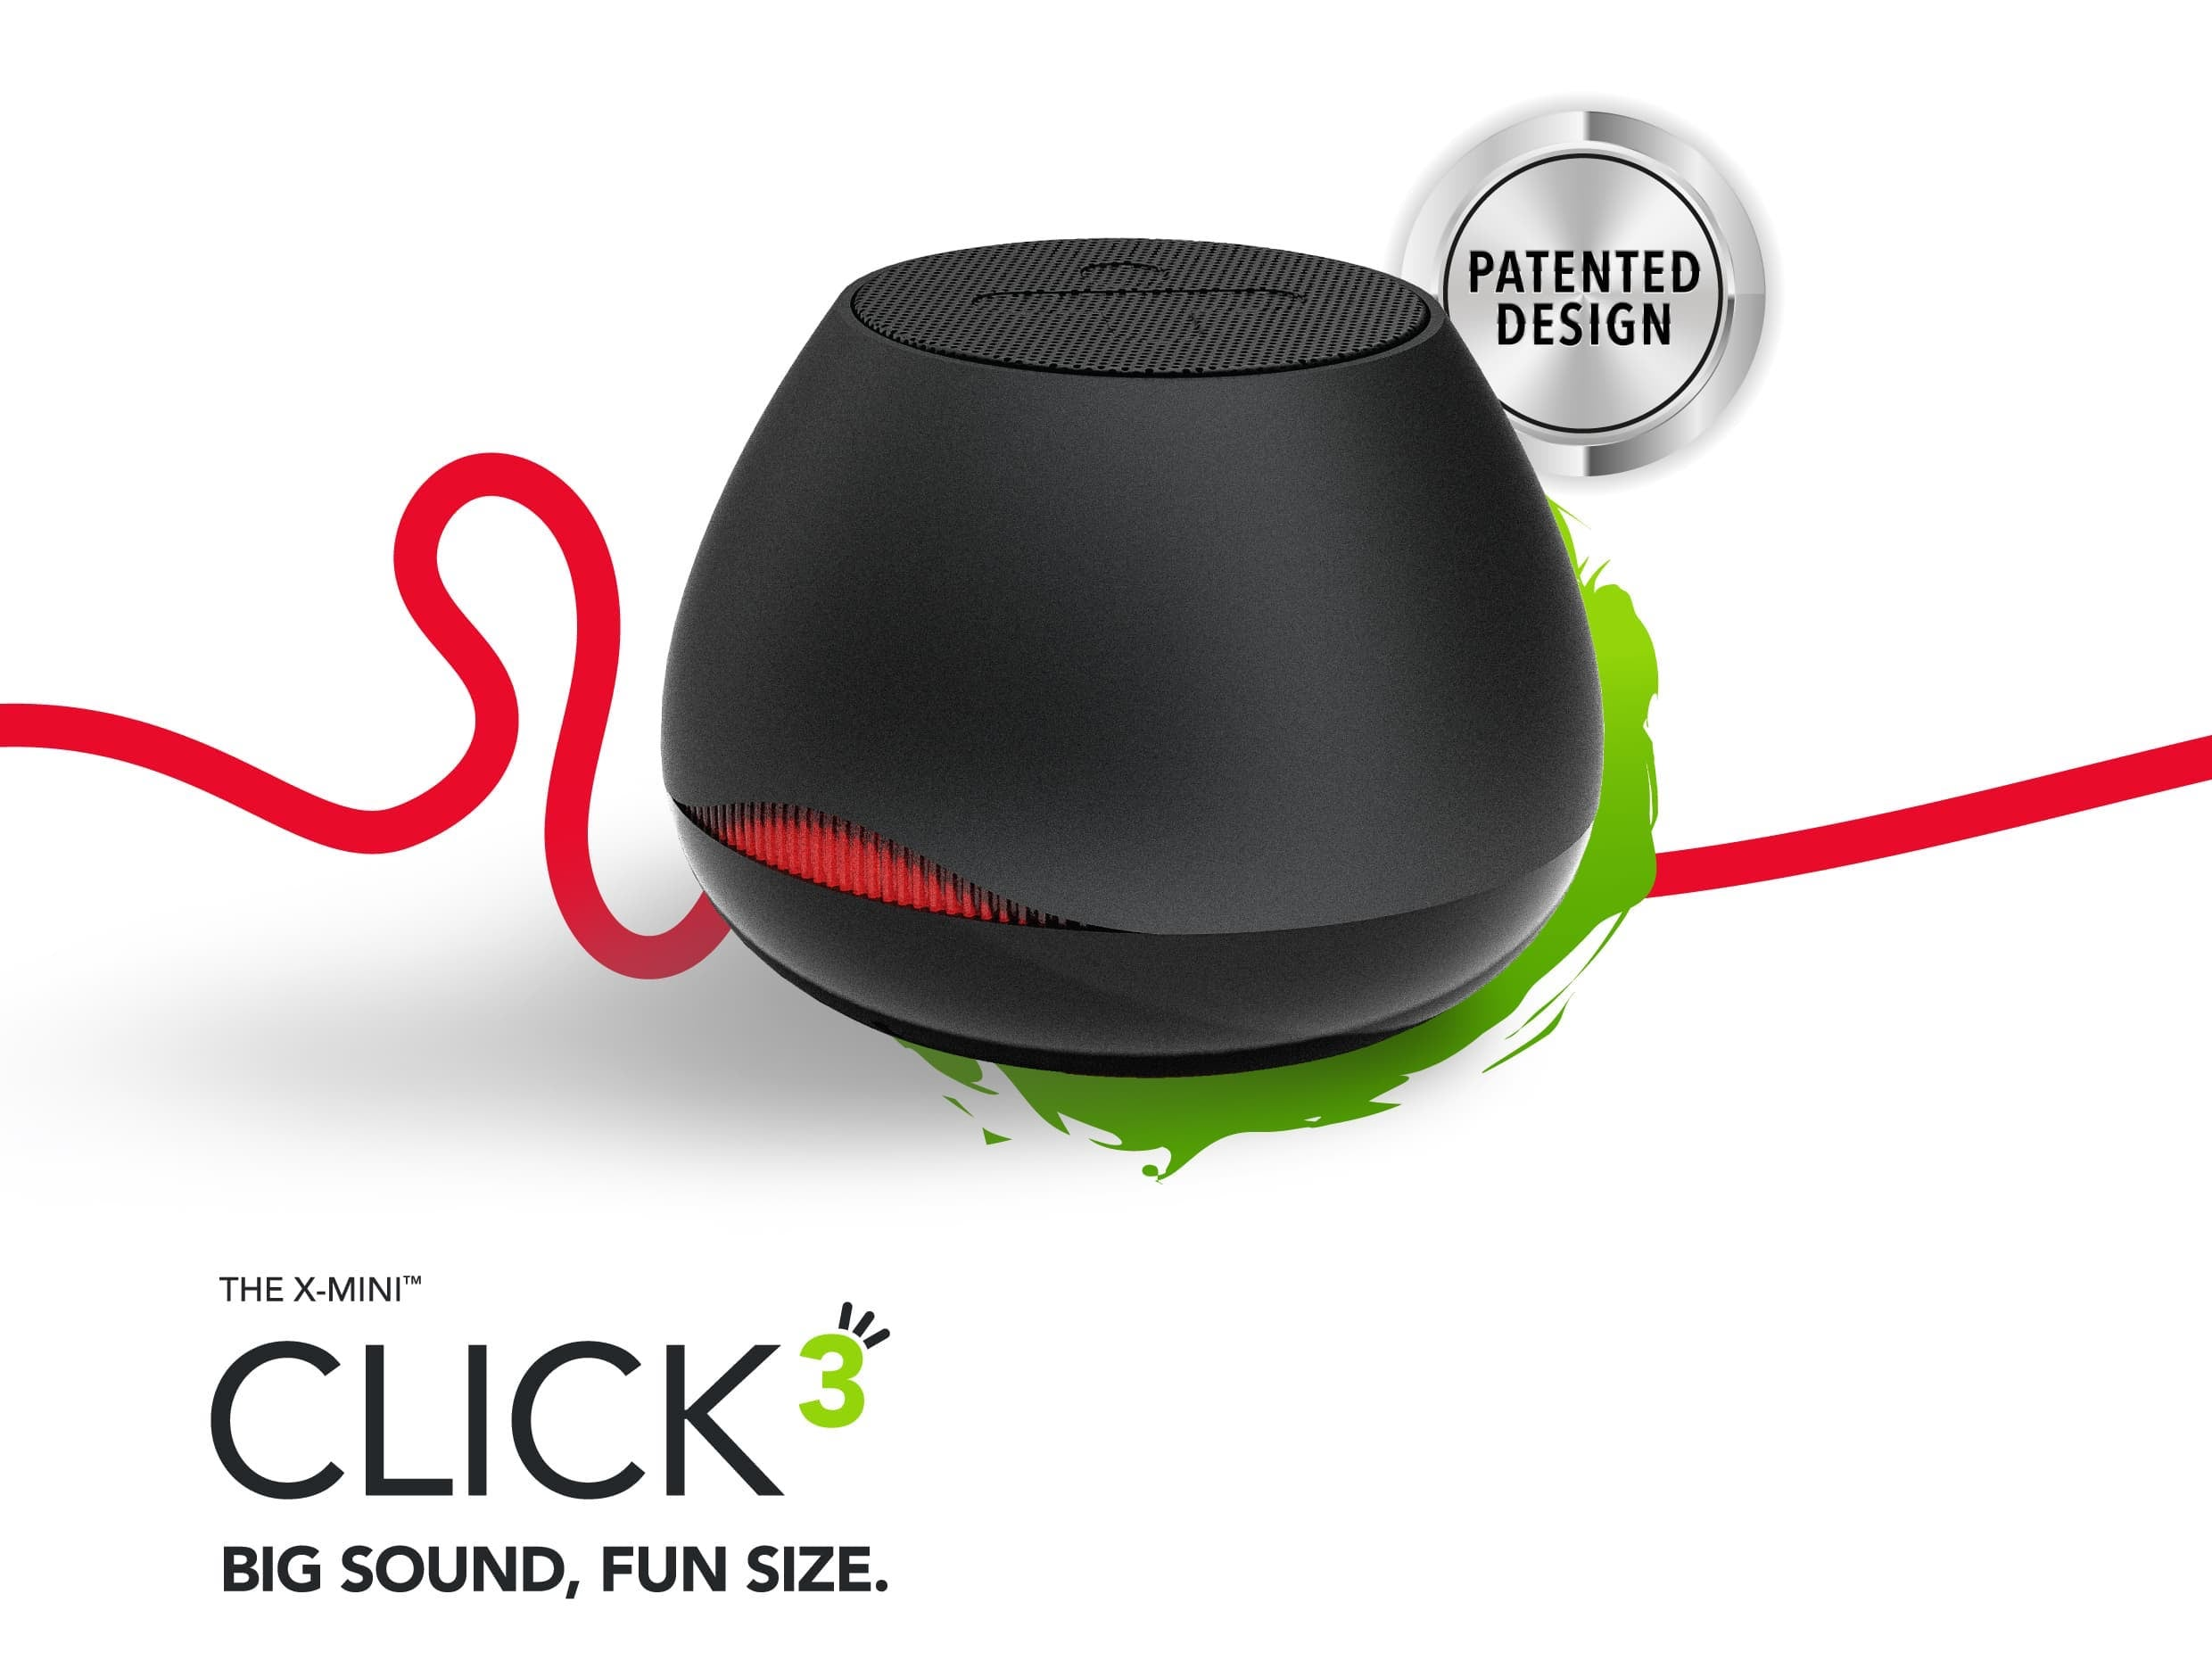 X-mini-Click-3-True-Wireless-Portable-Bluetooth-Stereo-Speaker